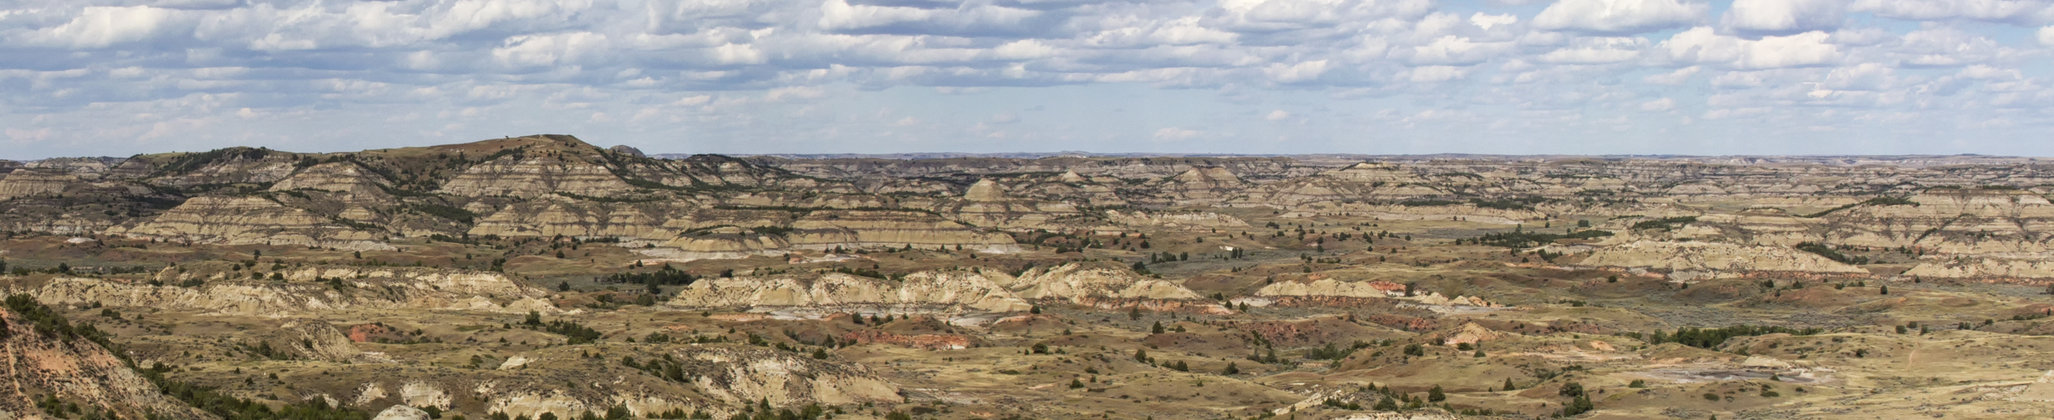 Badlands of Theodore Roosevelt National Park. Medora, North Dakota